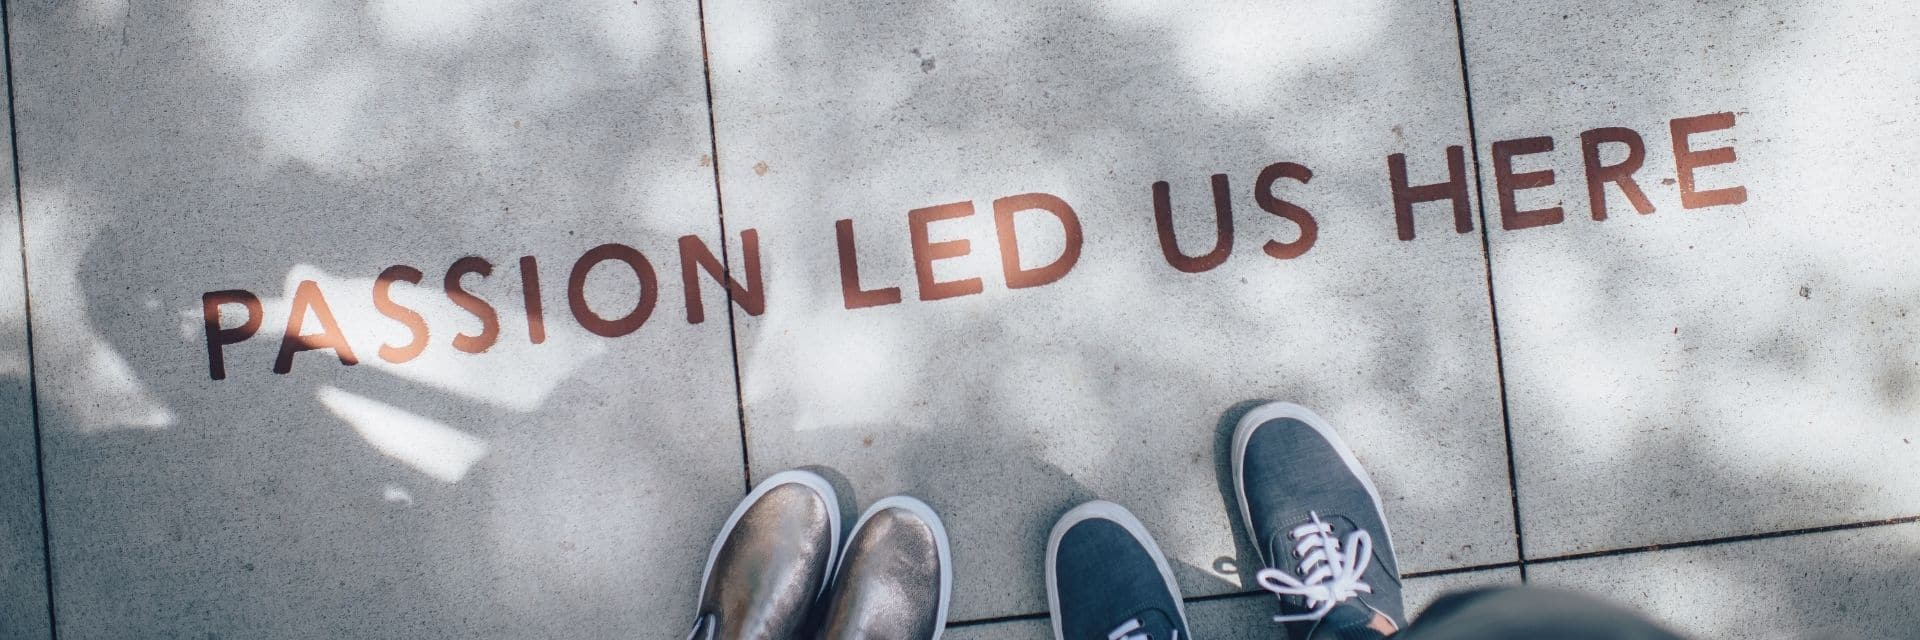 Birds-eye view of the pavement, with 2 people's shoes just in view. There's writing on the pavement reading 'PASSION LEAD US HERE' in red